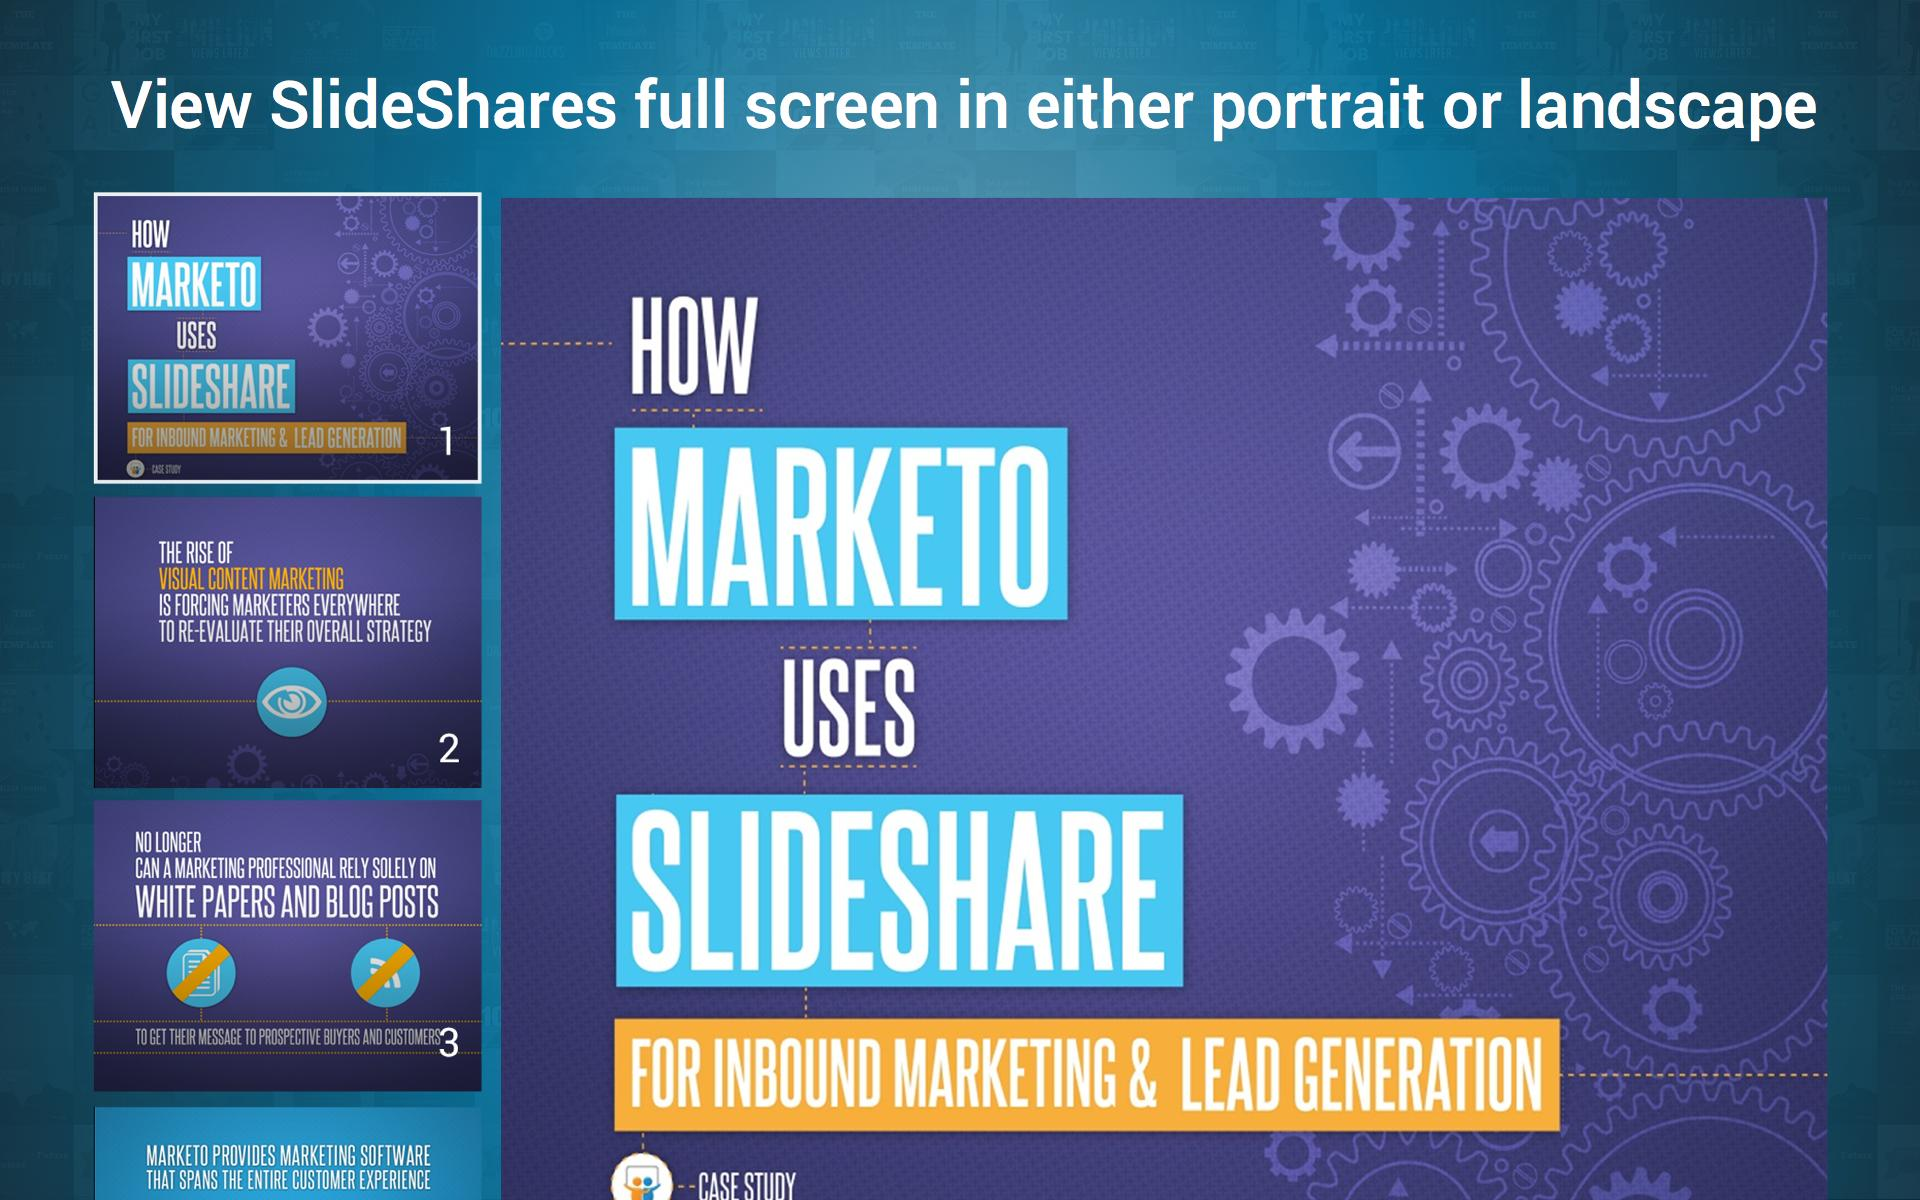 LinkedIn SlideShare 1.6.8 Screenshot 13